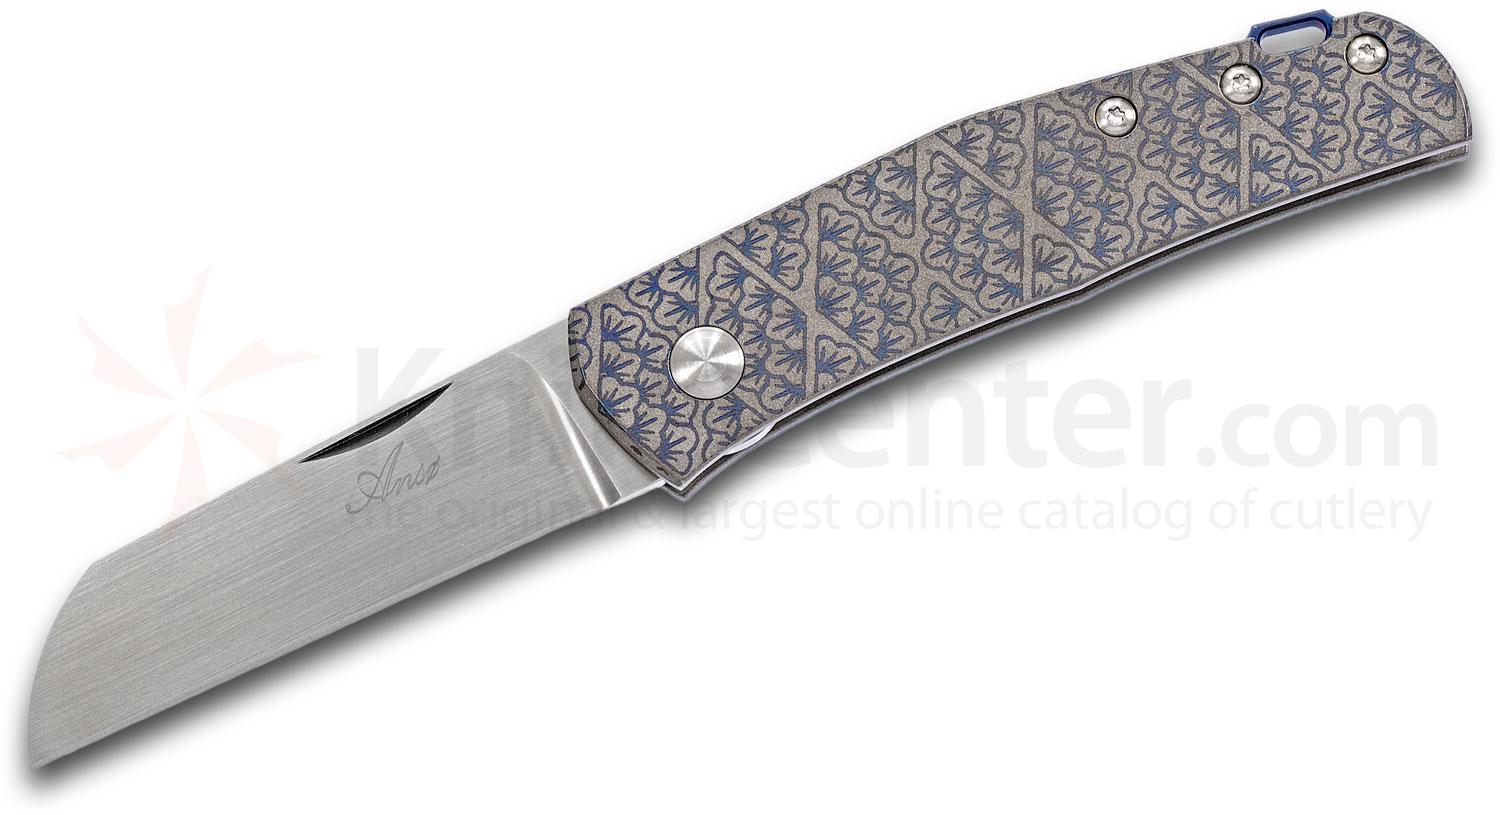 Jens Anso Custom Monte Carlo Slipjoint Folding Knife 2.625 inch RWL-34 Hand-Rubbed Satin Blade, Laser Engraved Titanium Handles